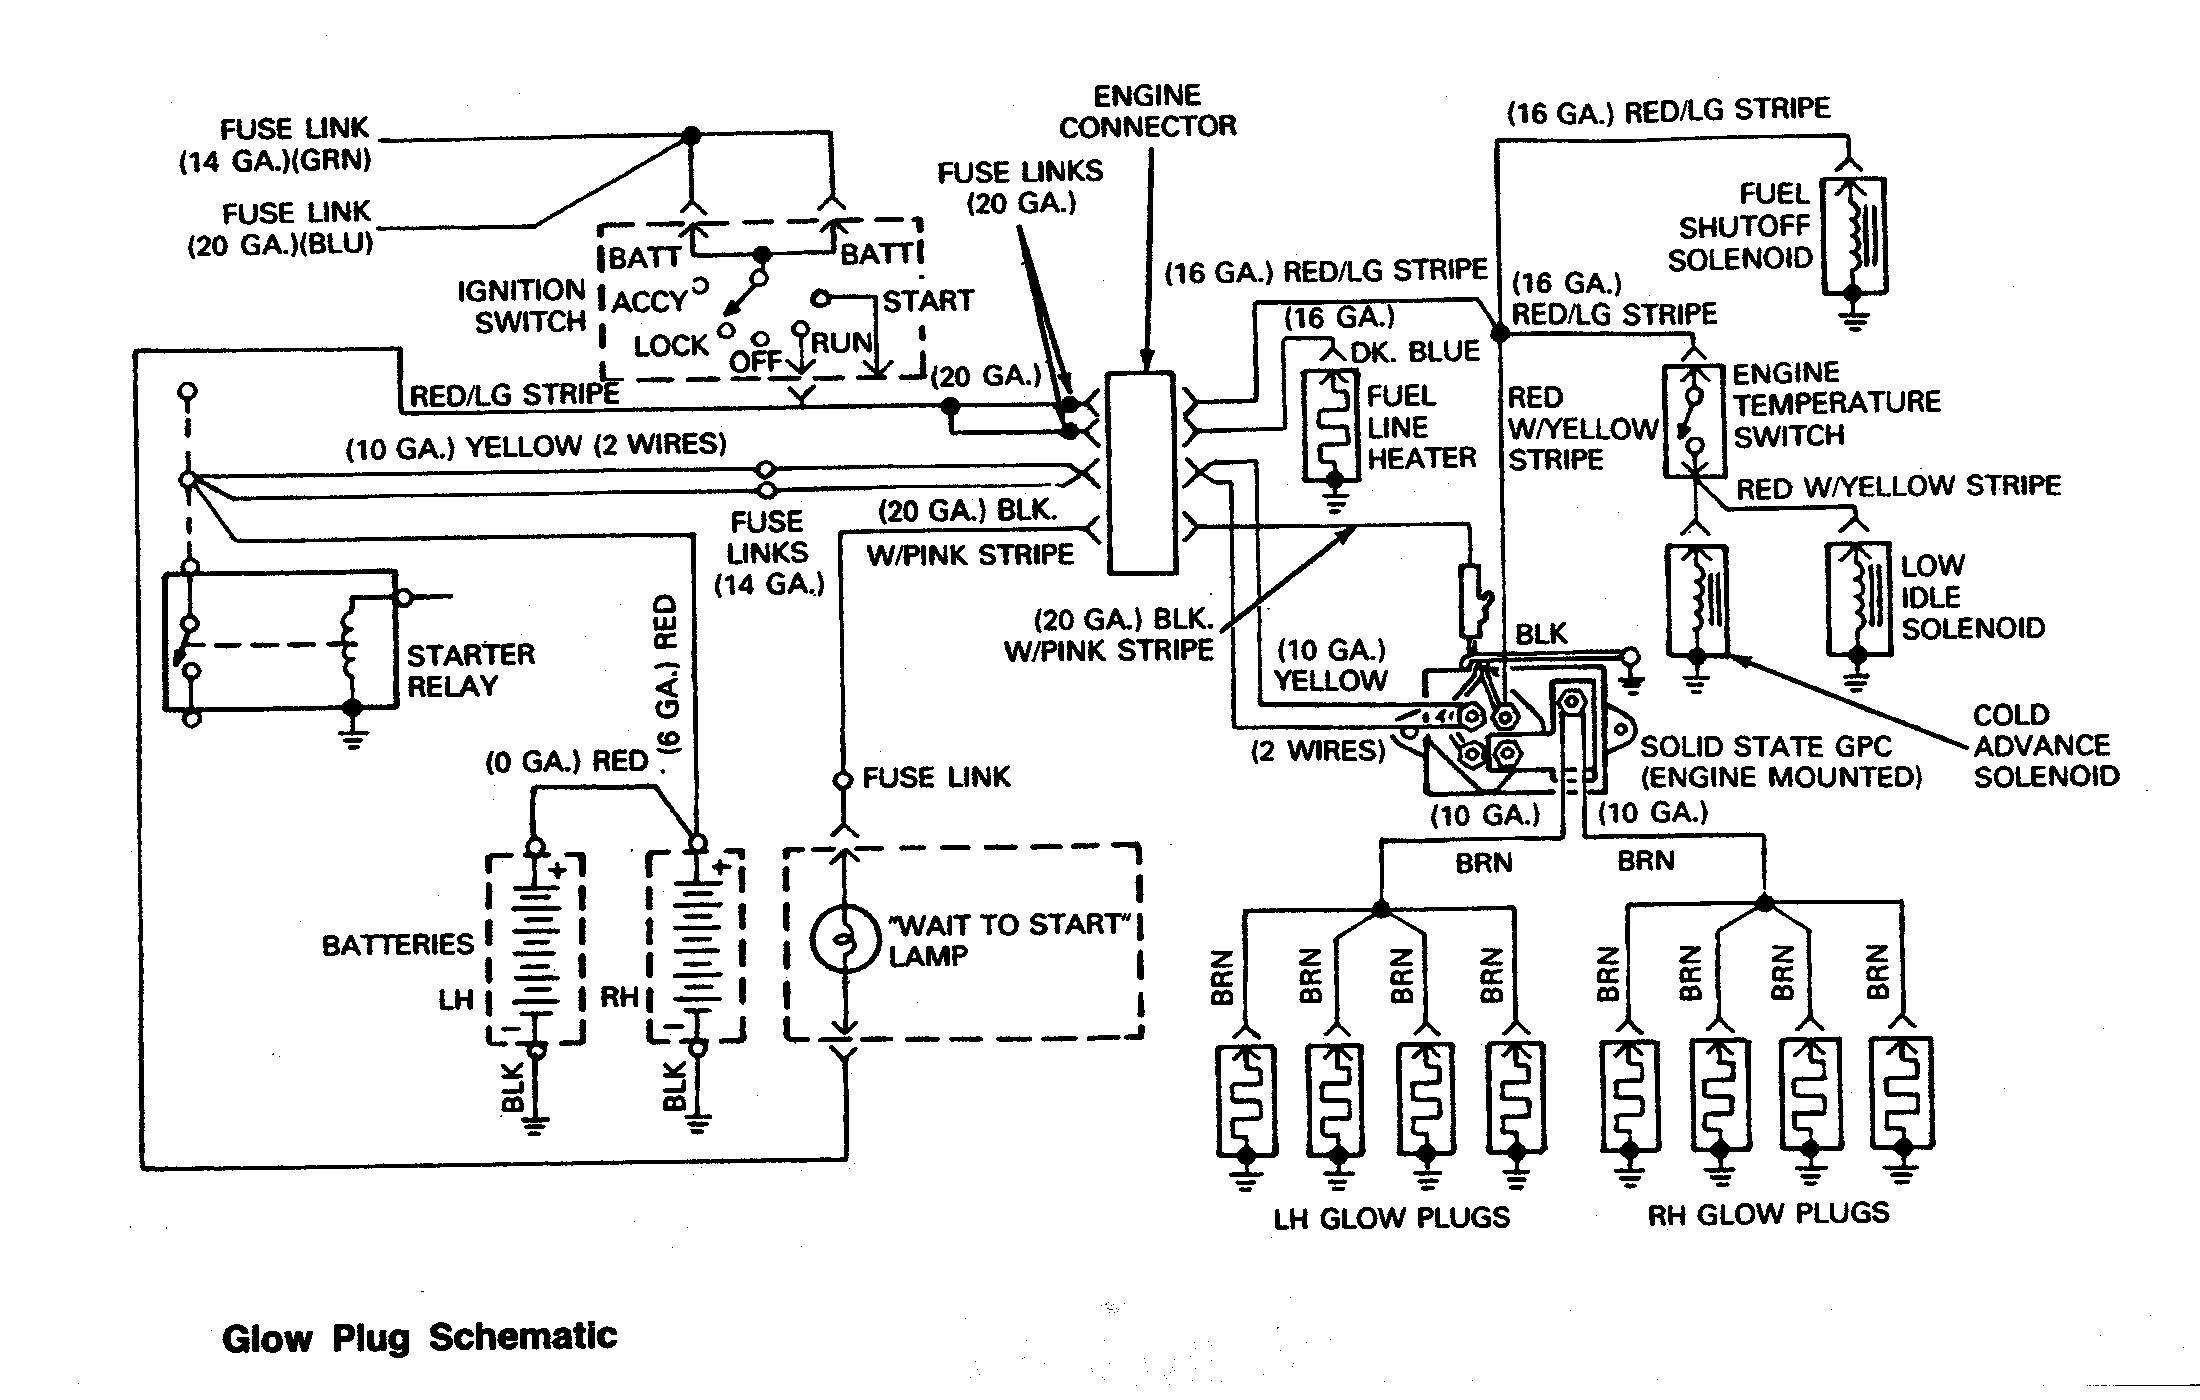 Wiring Diagram Cars Trucks Wiring Diagram Cars Trucks Truck Horn Wiring Wiring Diagrams Trailer Wiring Diagram Engine Tune Diagram